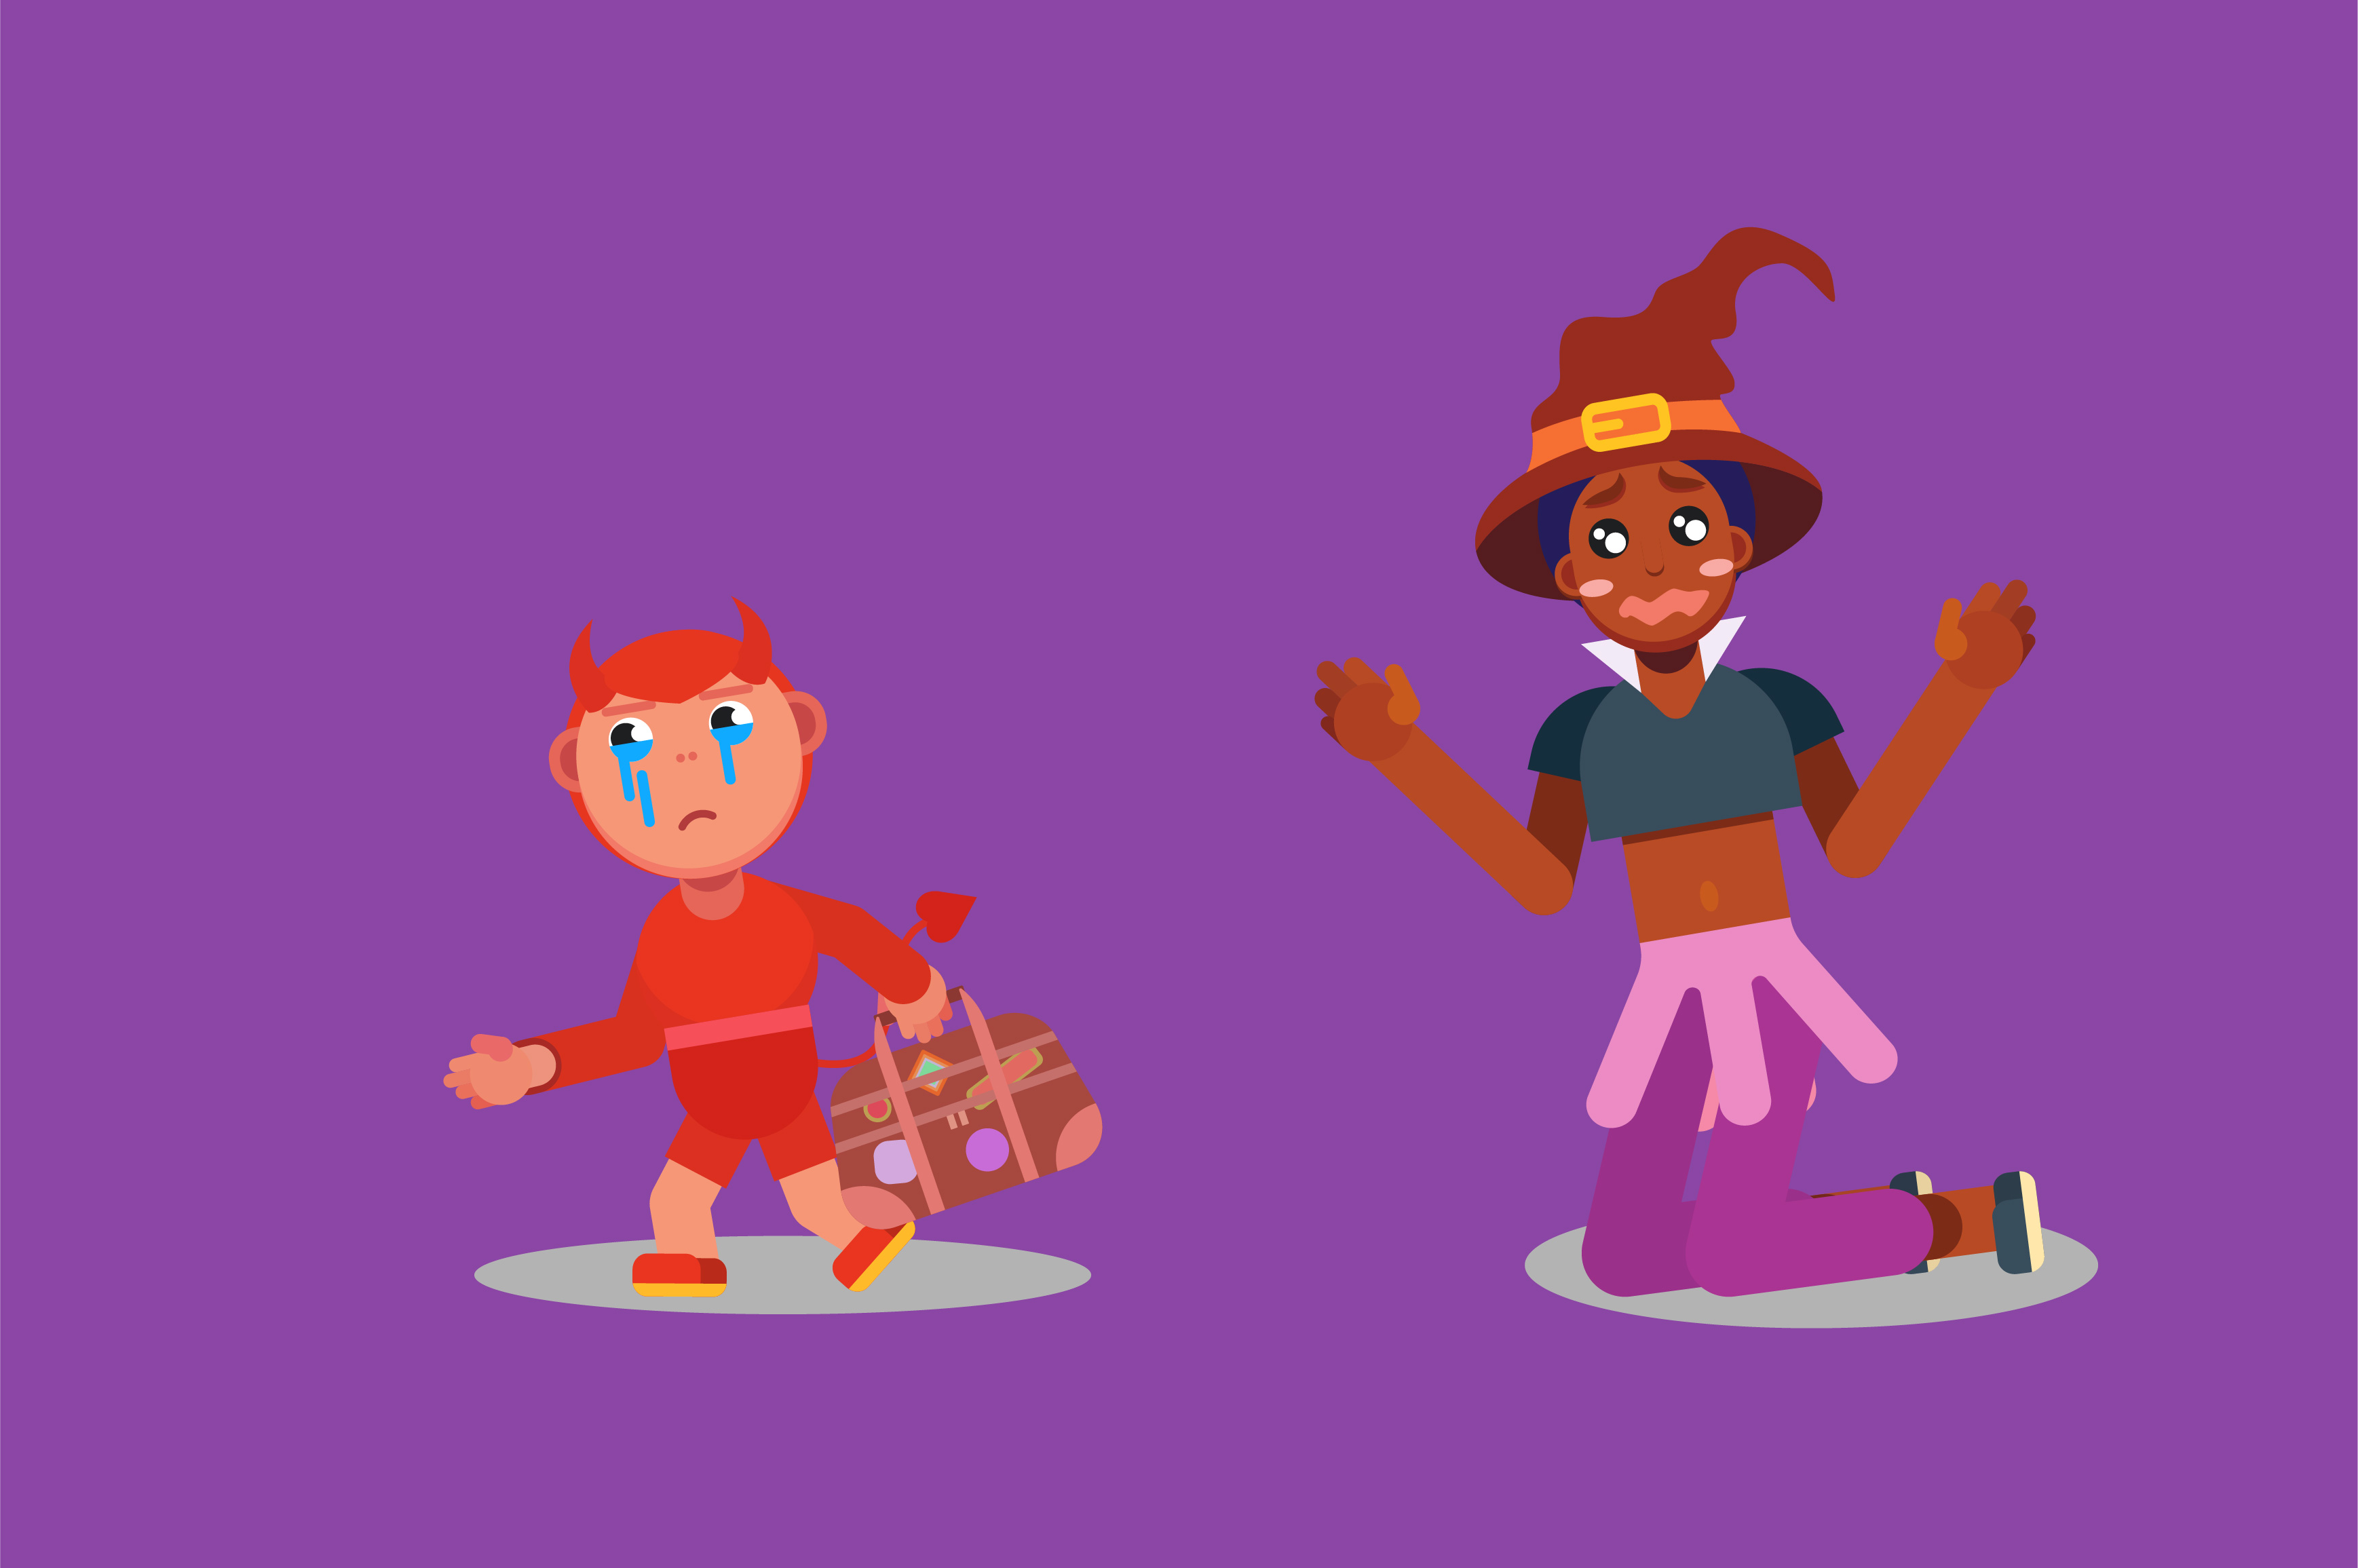 Download Free Halloween Characters Vector Illustration Graphic By Altumfatih Creative Fabrica for Cricut Explore, Silhouette and other cutting machines.